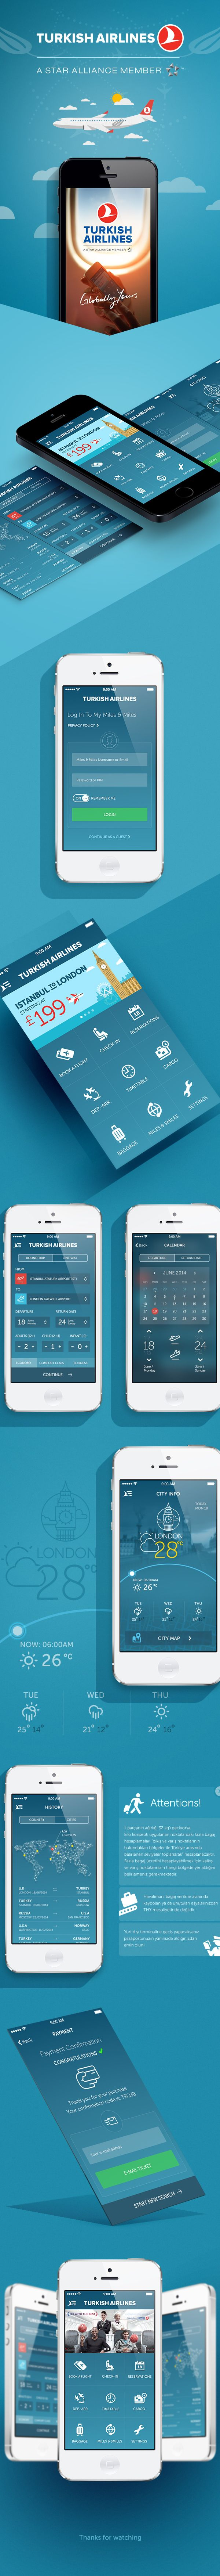 Turkish Airlines App Redesign by Murat Gürsoy, via Behance